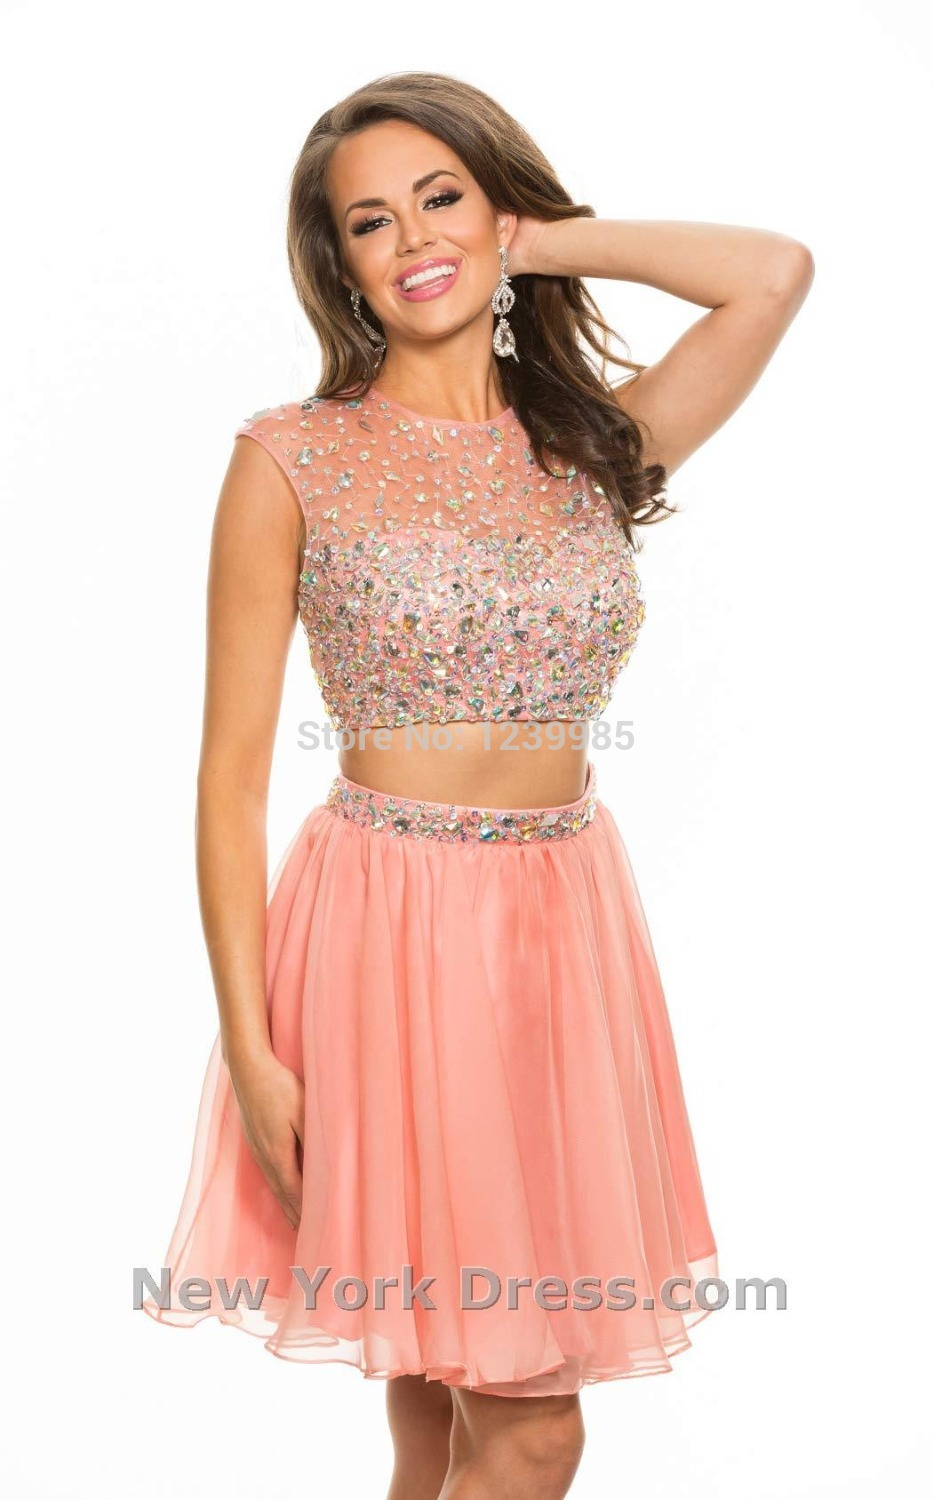 Showing picture: Dresses For An 8th Grade Dance